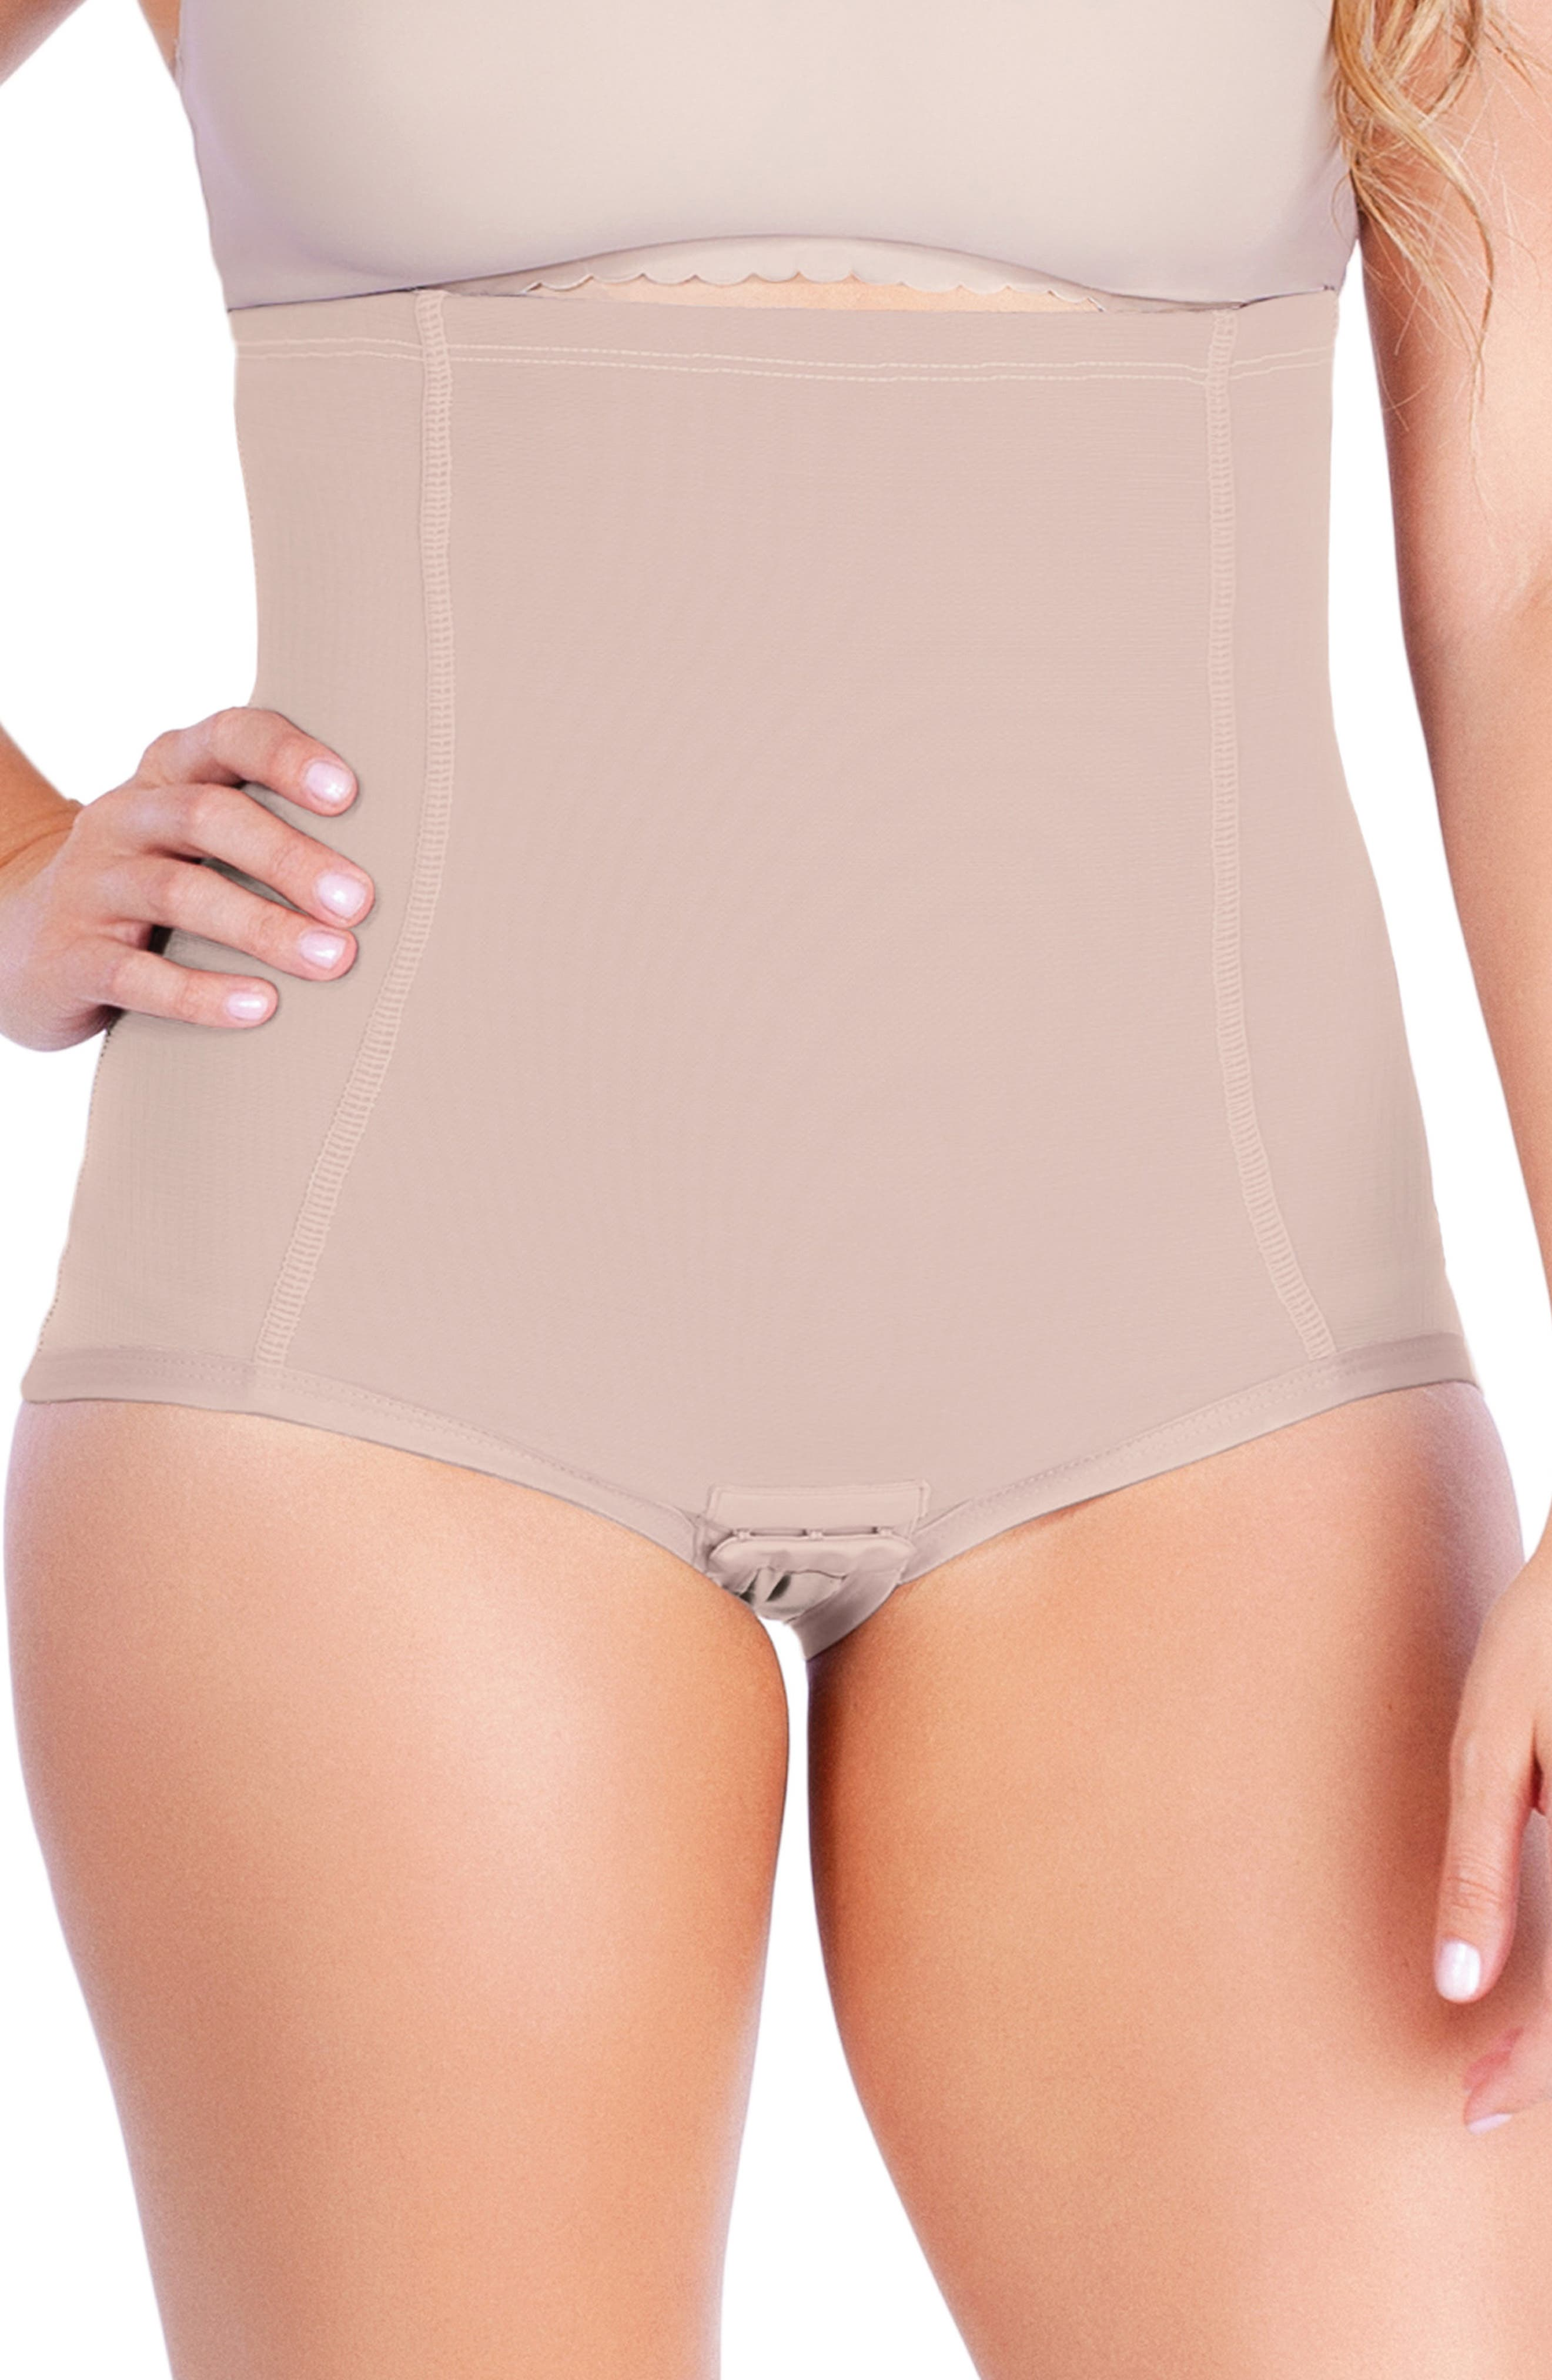 Vintage Lingerie | New Underwear, Bras, Slips Womens Belly Bandit Postpartum Girdle Size X-Small - Beige $59.95 AT vintagedancer.com